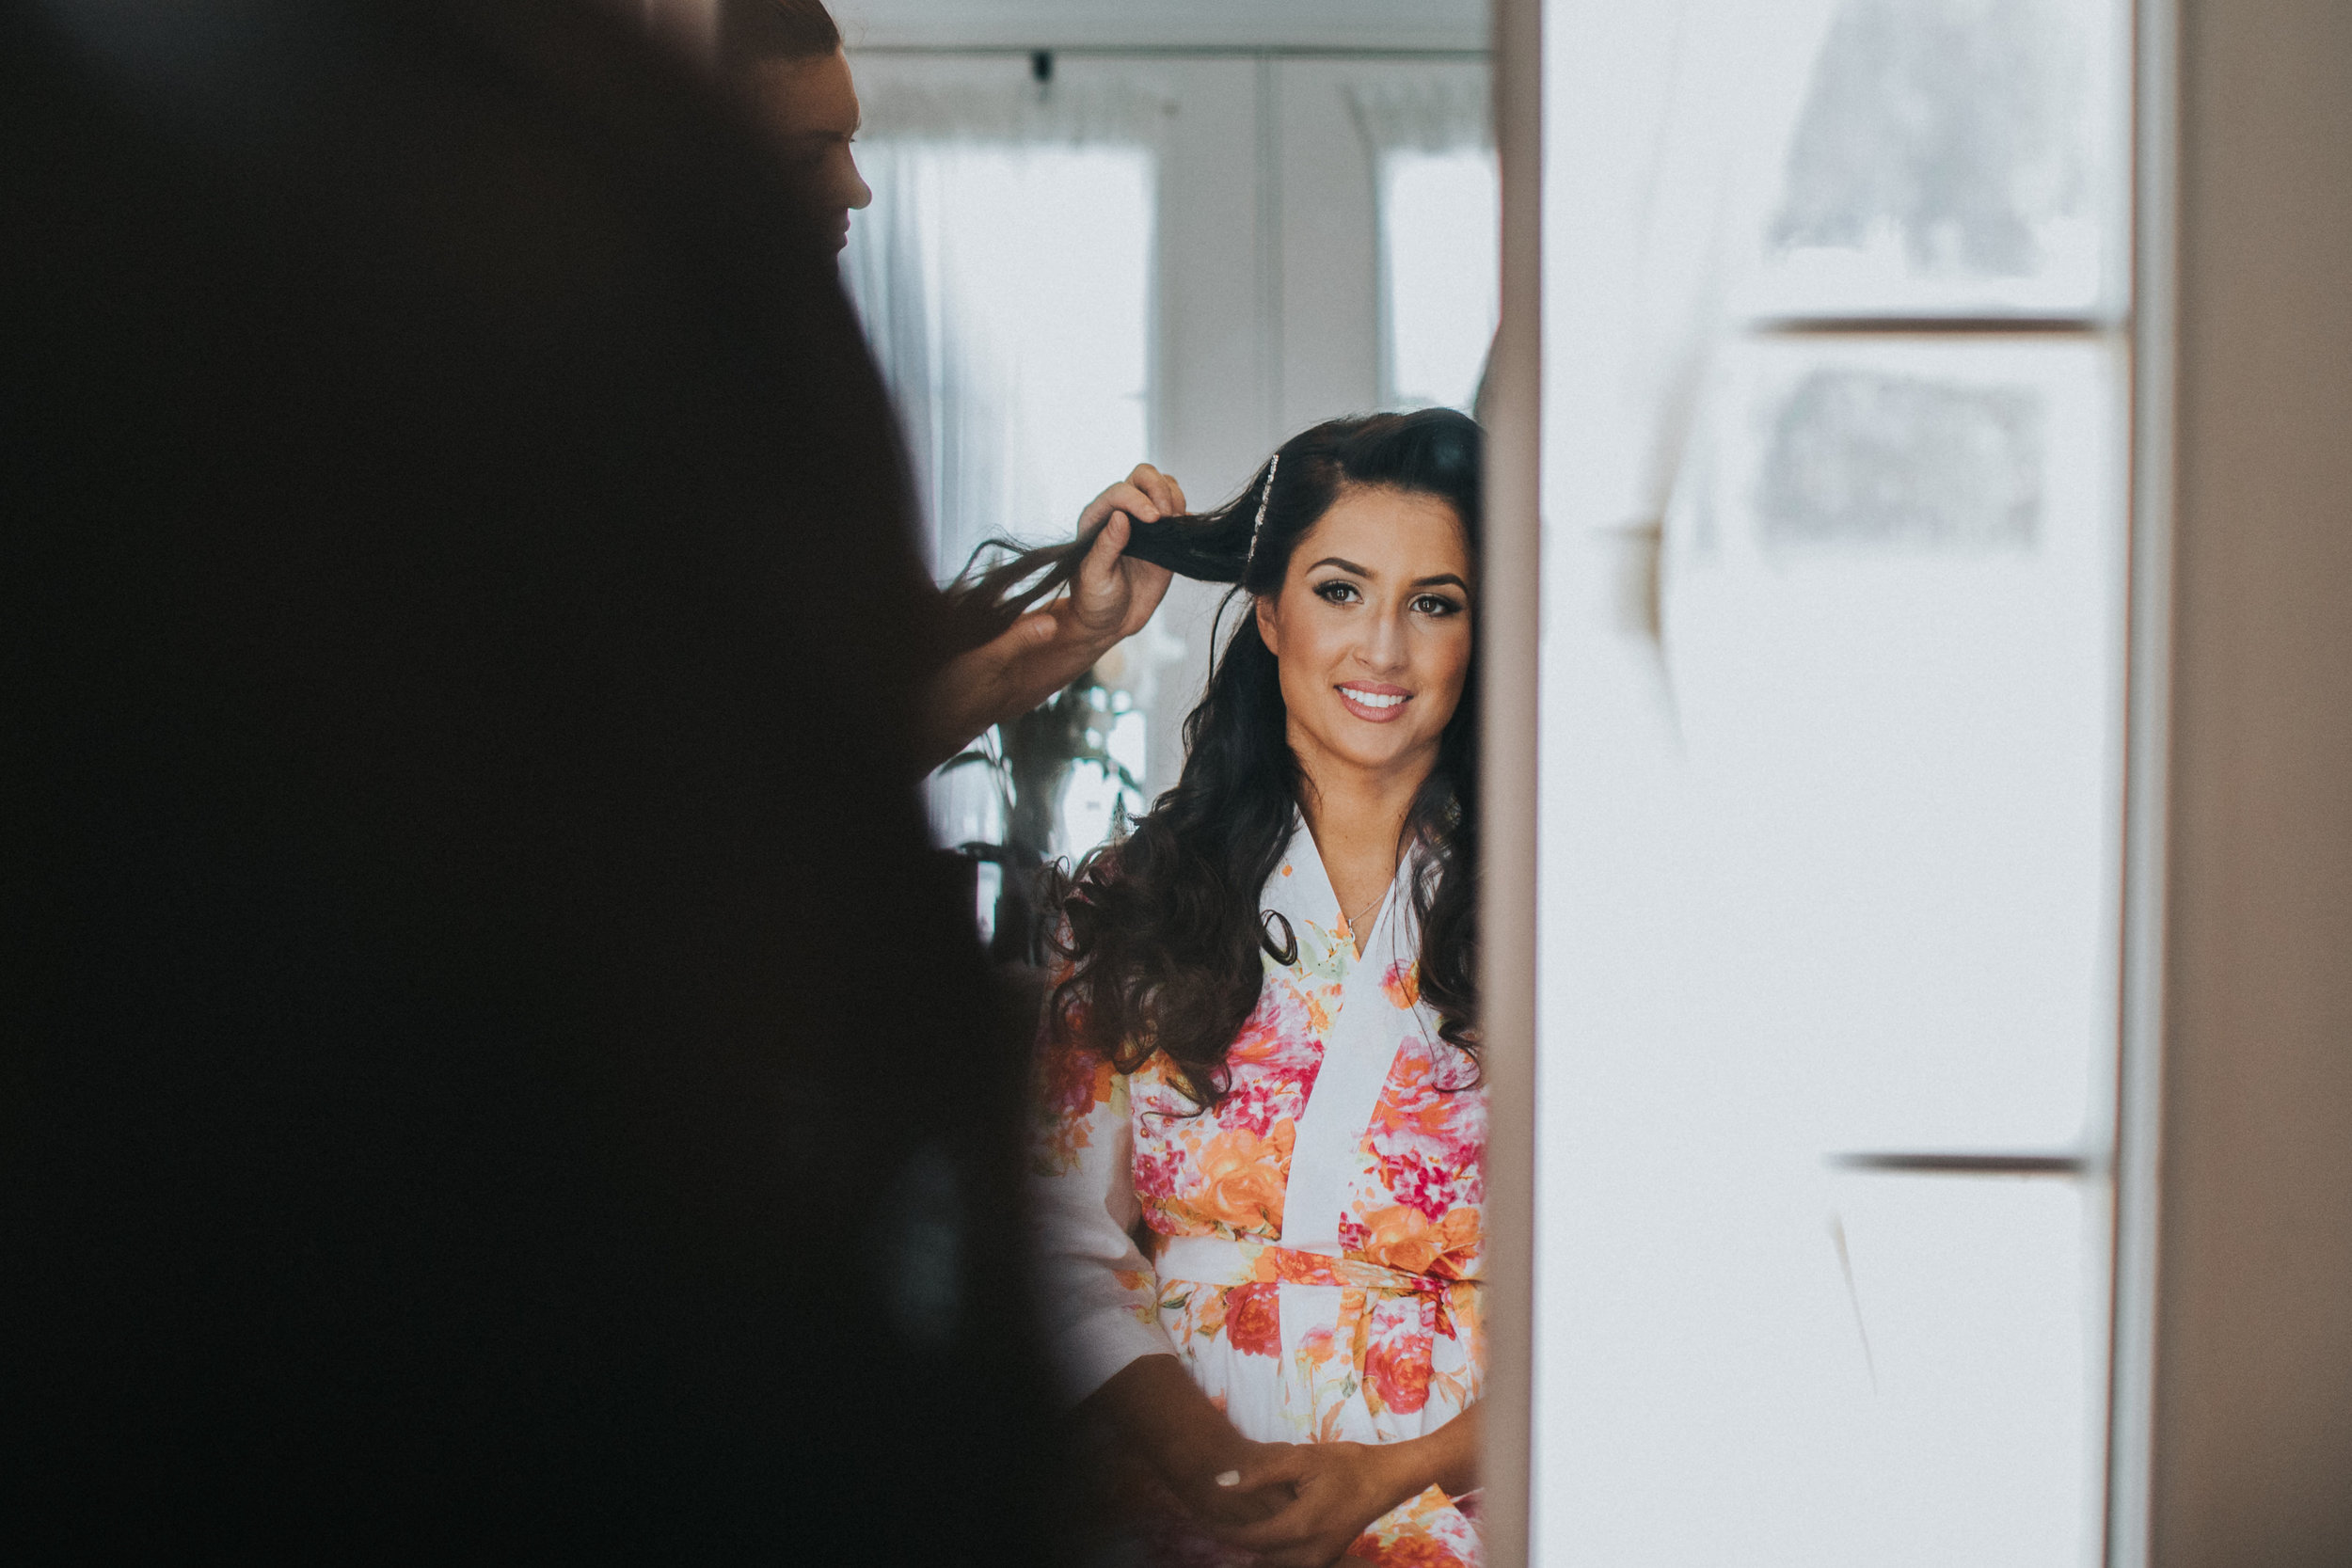 New-Jersey-Wedding-Photographer-JennaLynnPhotography-Trump-National-Golf-Club-Philadelphia-ErikaChris-Getting-Ready-1.jpg